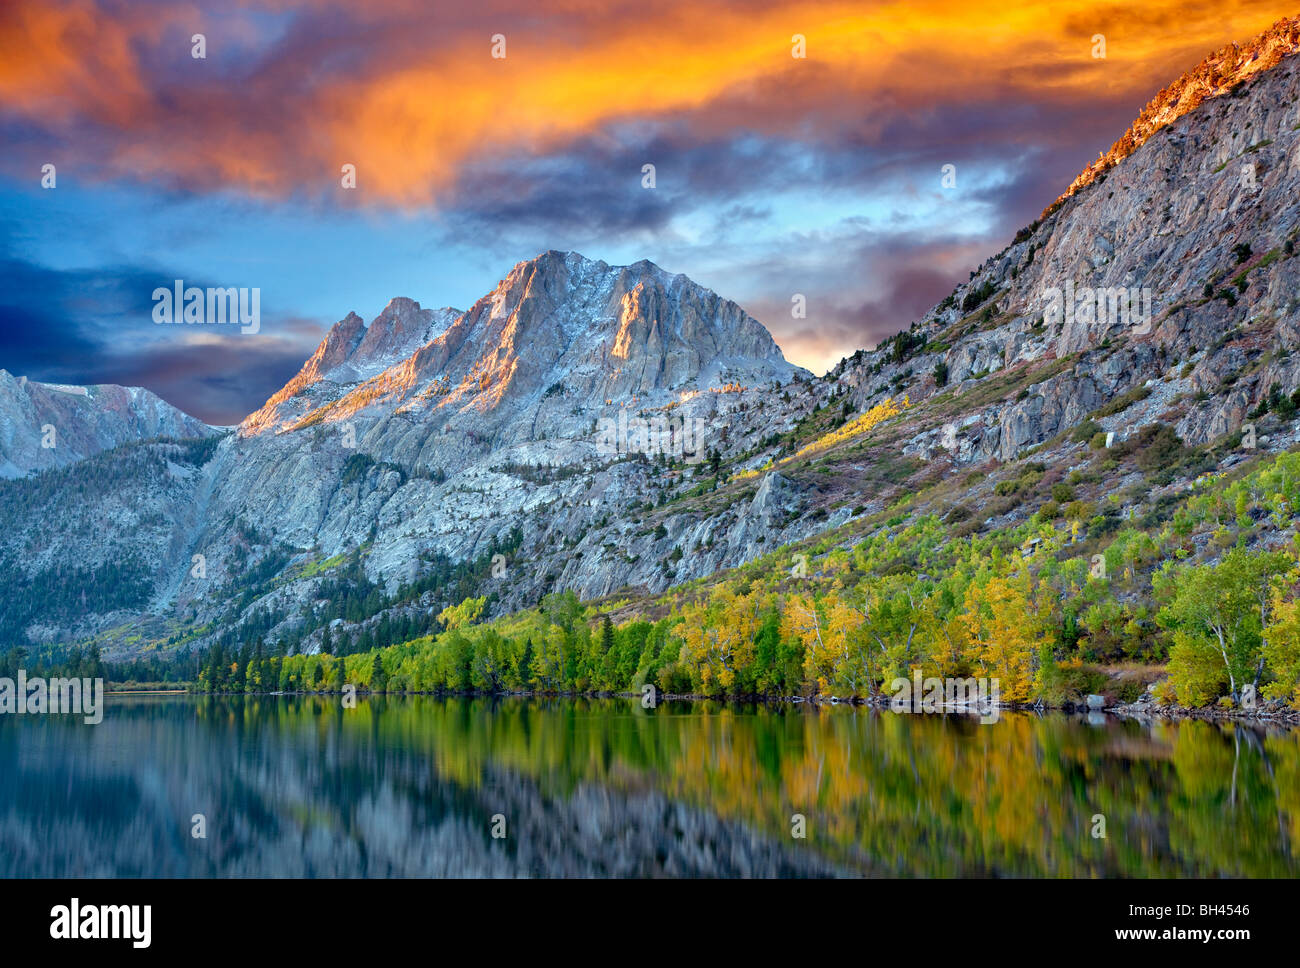 Silver Lake reflection with fall colored cottonwood trees and sunrise. California. Sky has been added. - Stock Image